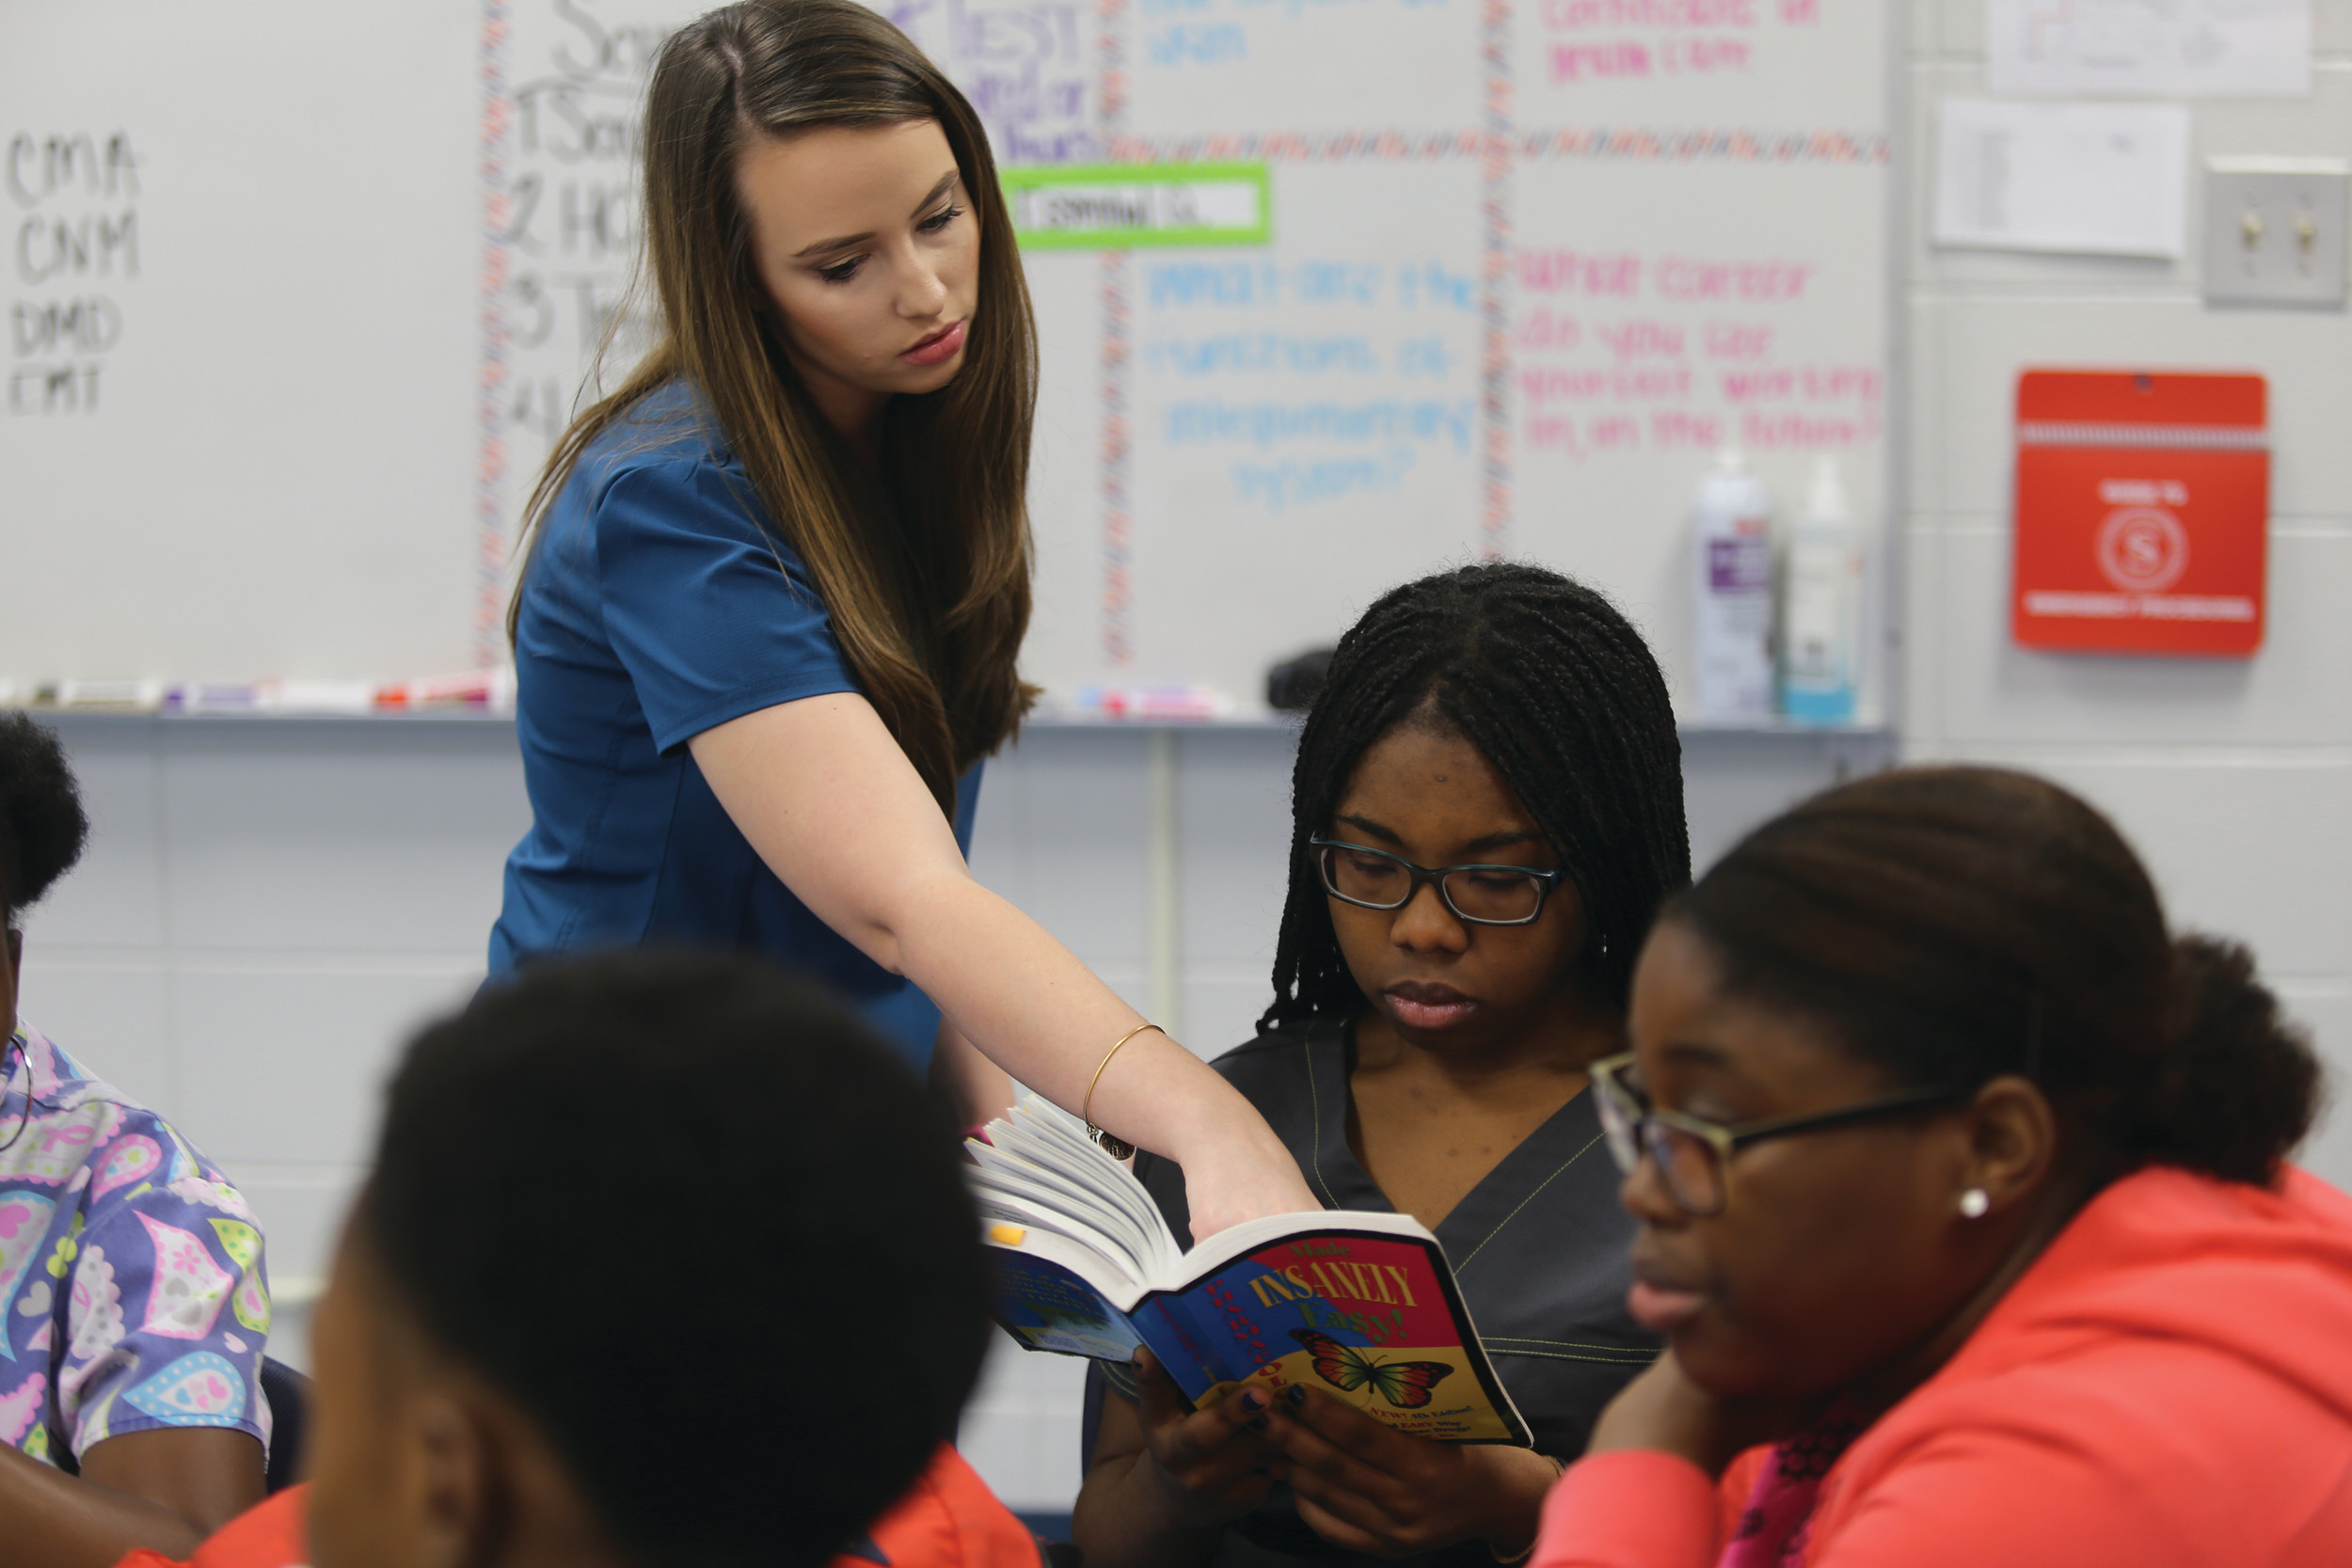 Sumter Career and Technology Center teacher Tiffany Morris goes over drug classifications from a textbook with Sumter High School senior Heather Brown on Friday as other students look on at the center.